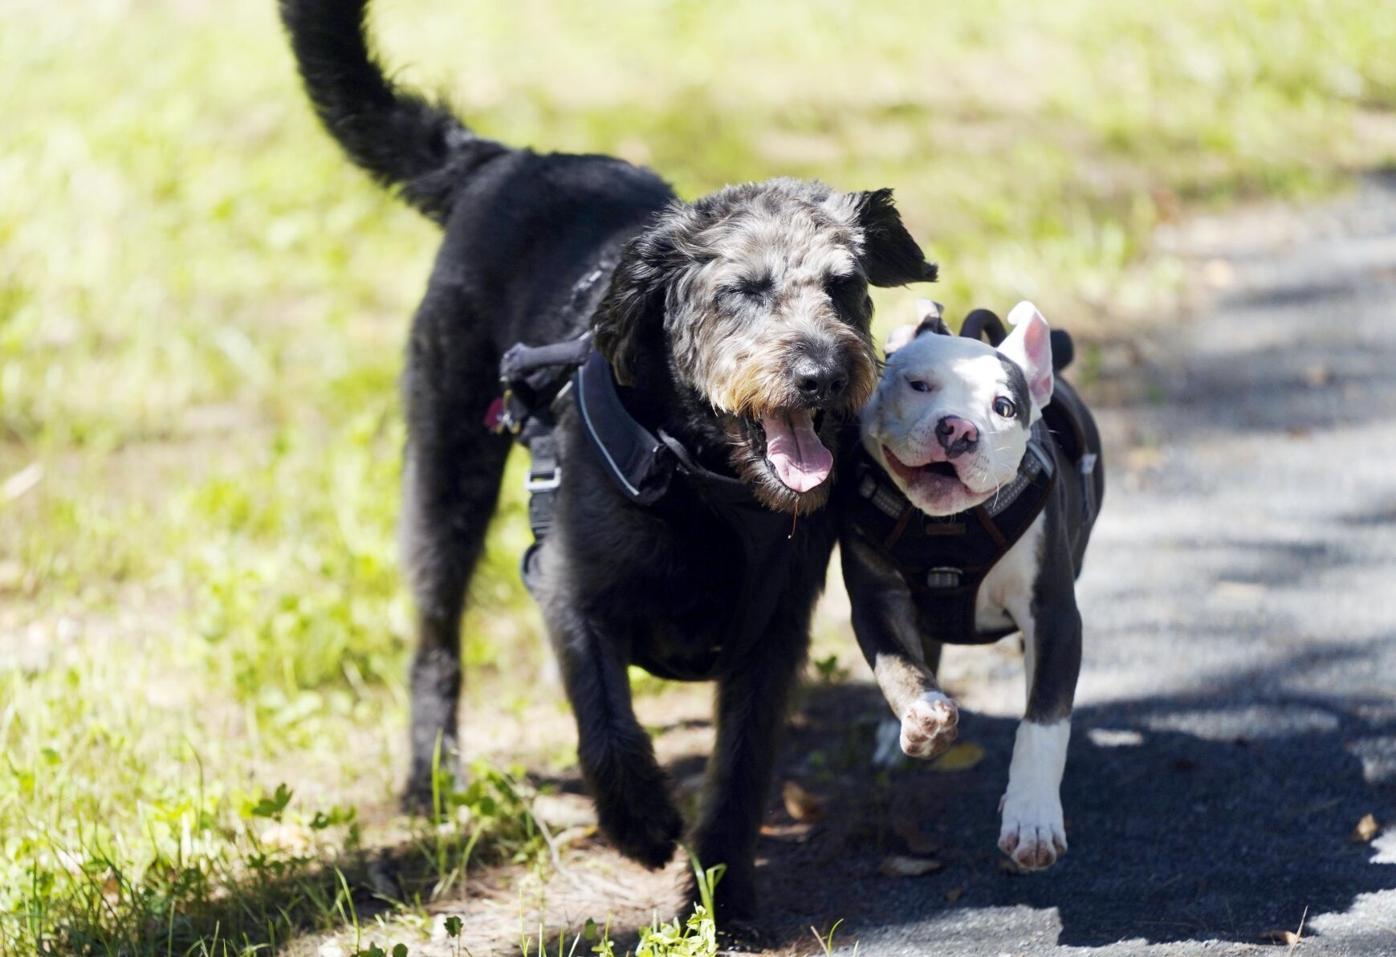 dogs run together